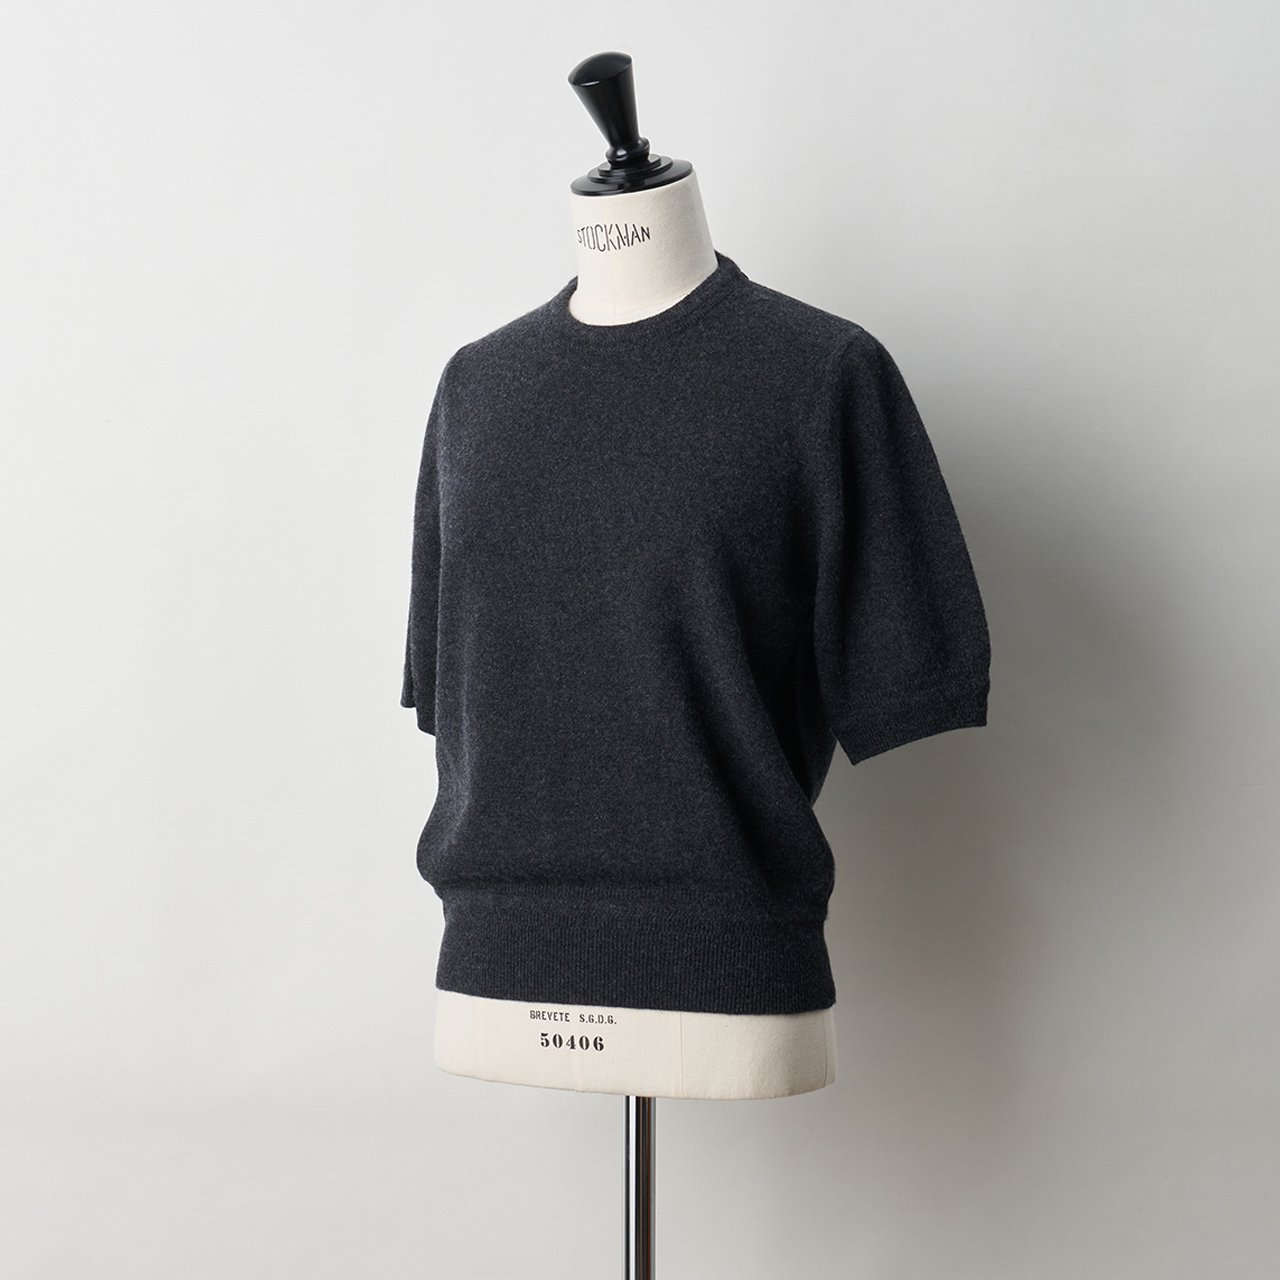 CASHMERE BASIC HALF SLEEVE TOPS<BR>CHARCOAL GREY